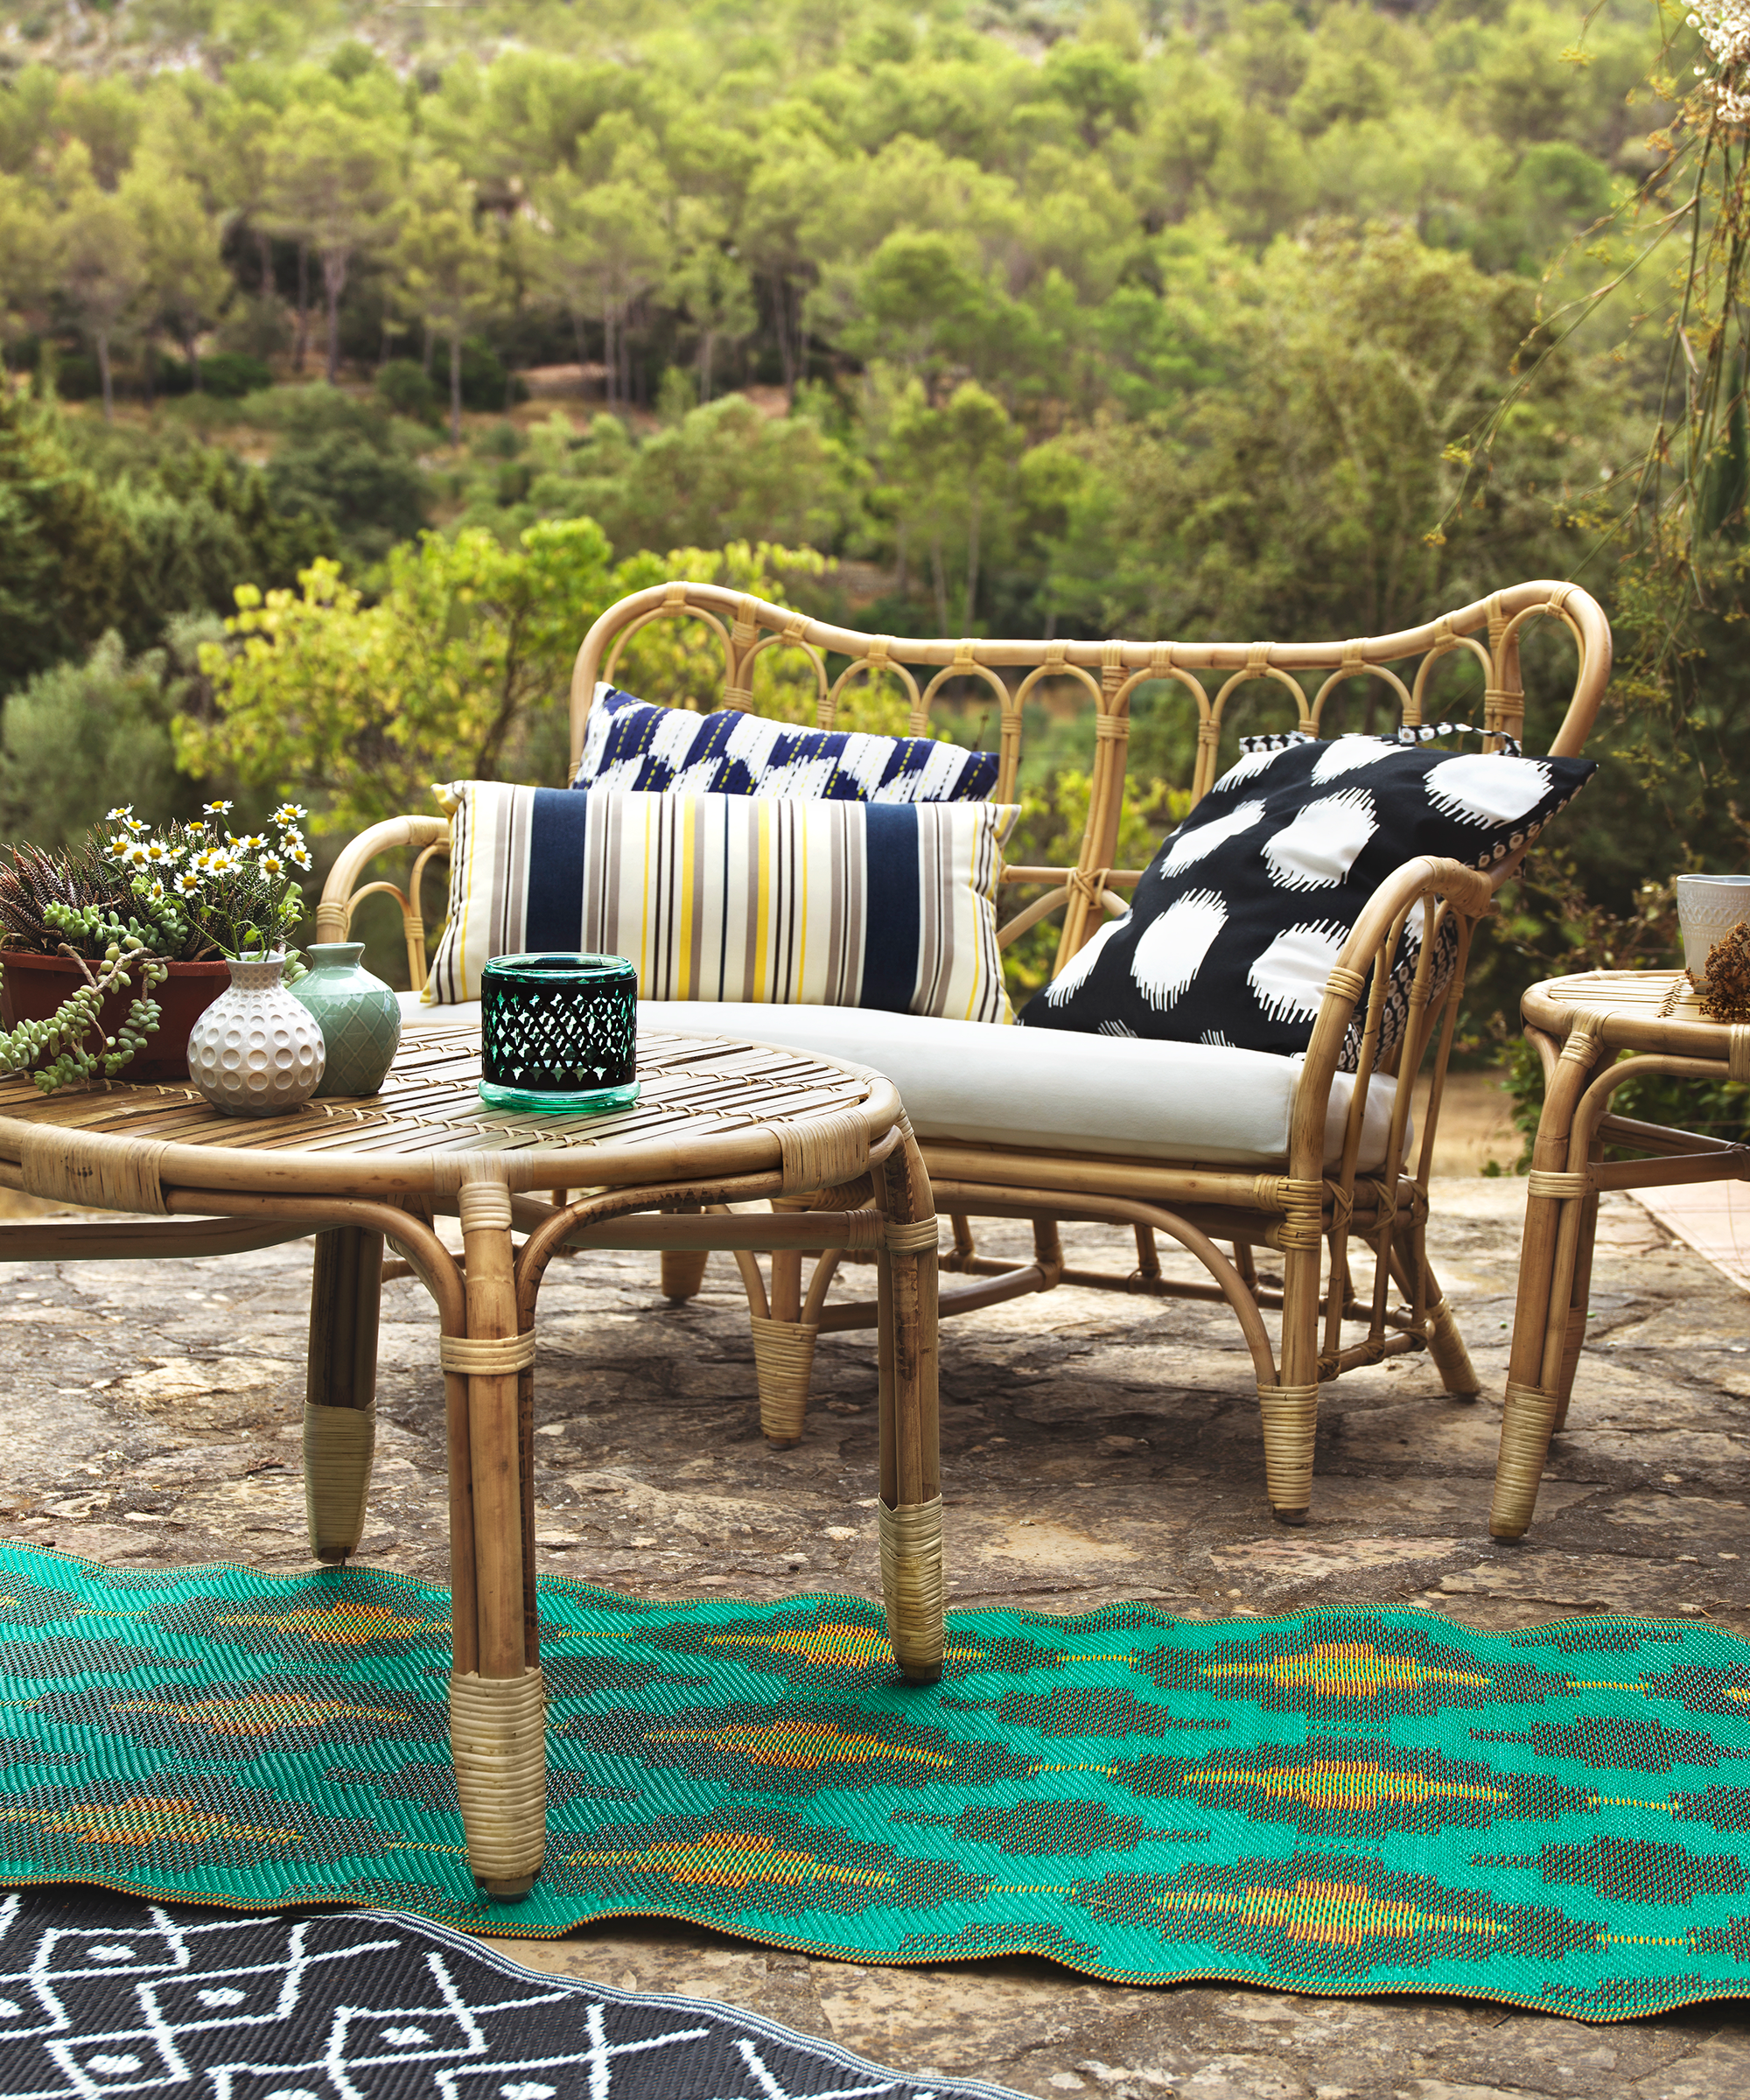 Ikea S Wide Selection Of Outdoor Accessories Balcony Furniture And Patio Looks For Any Size E